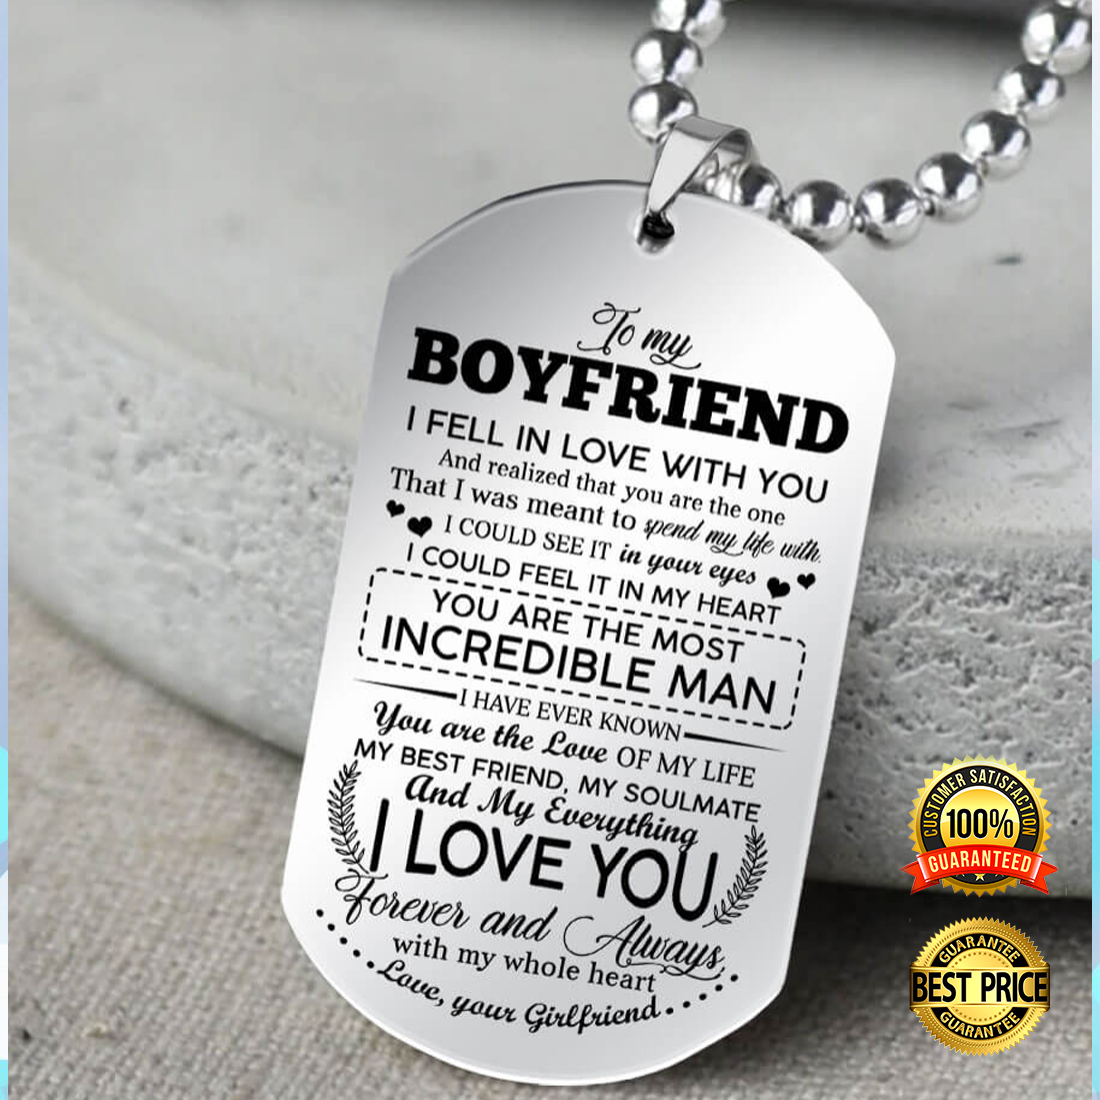 To my boyfriend i fell in love with you dog tag 5